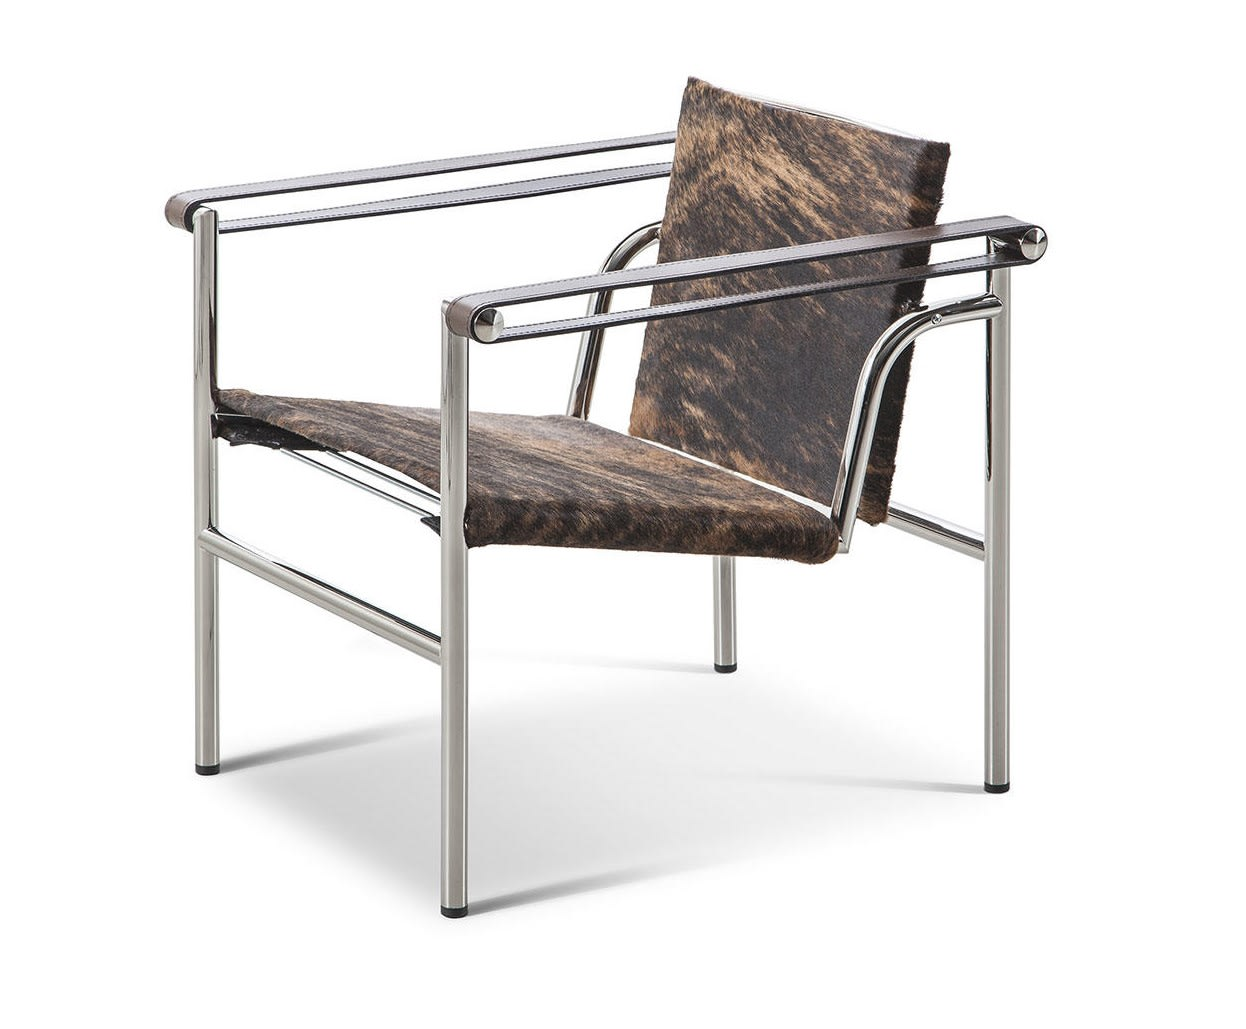 Chromed structure - Tobacco armrests